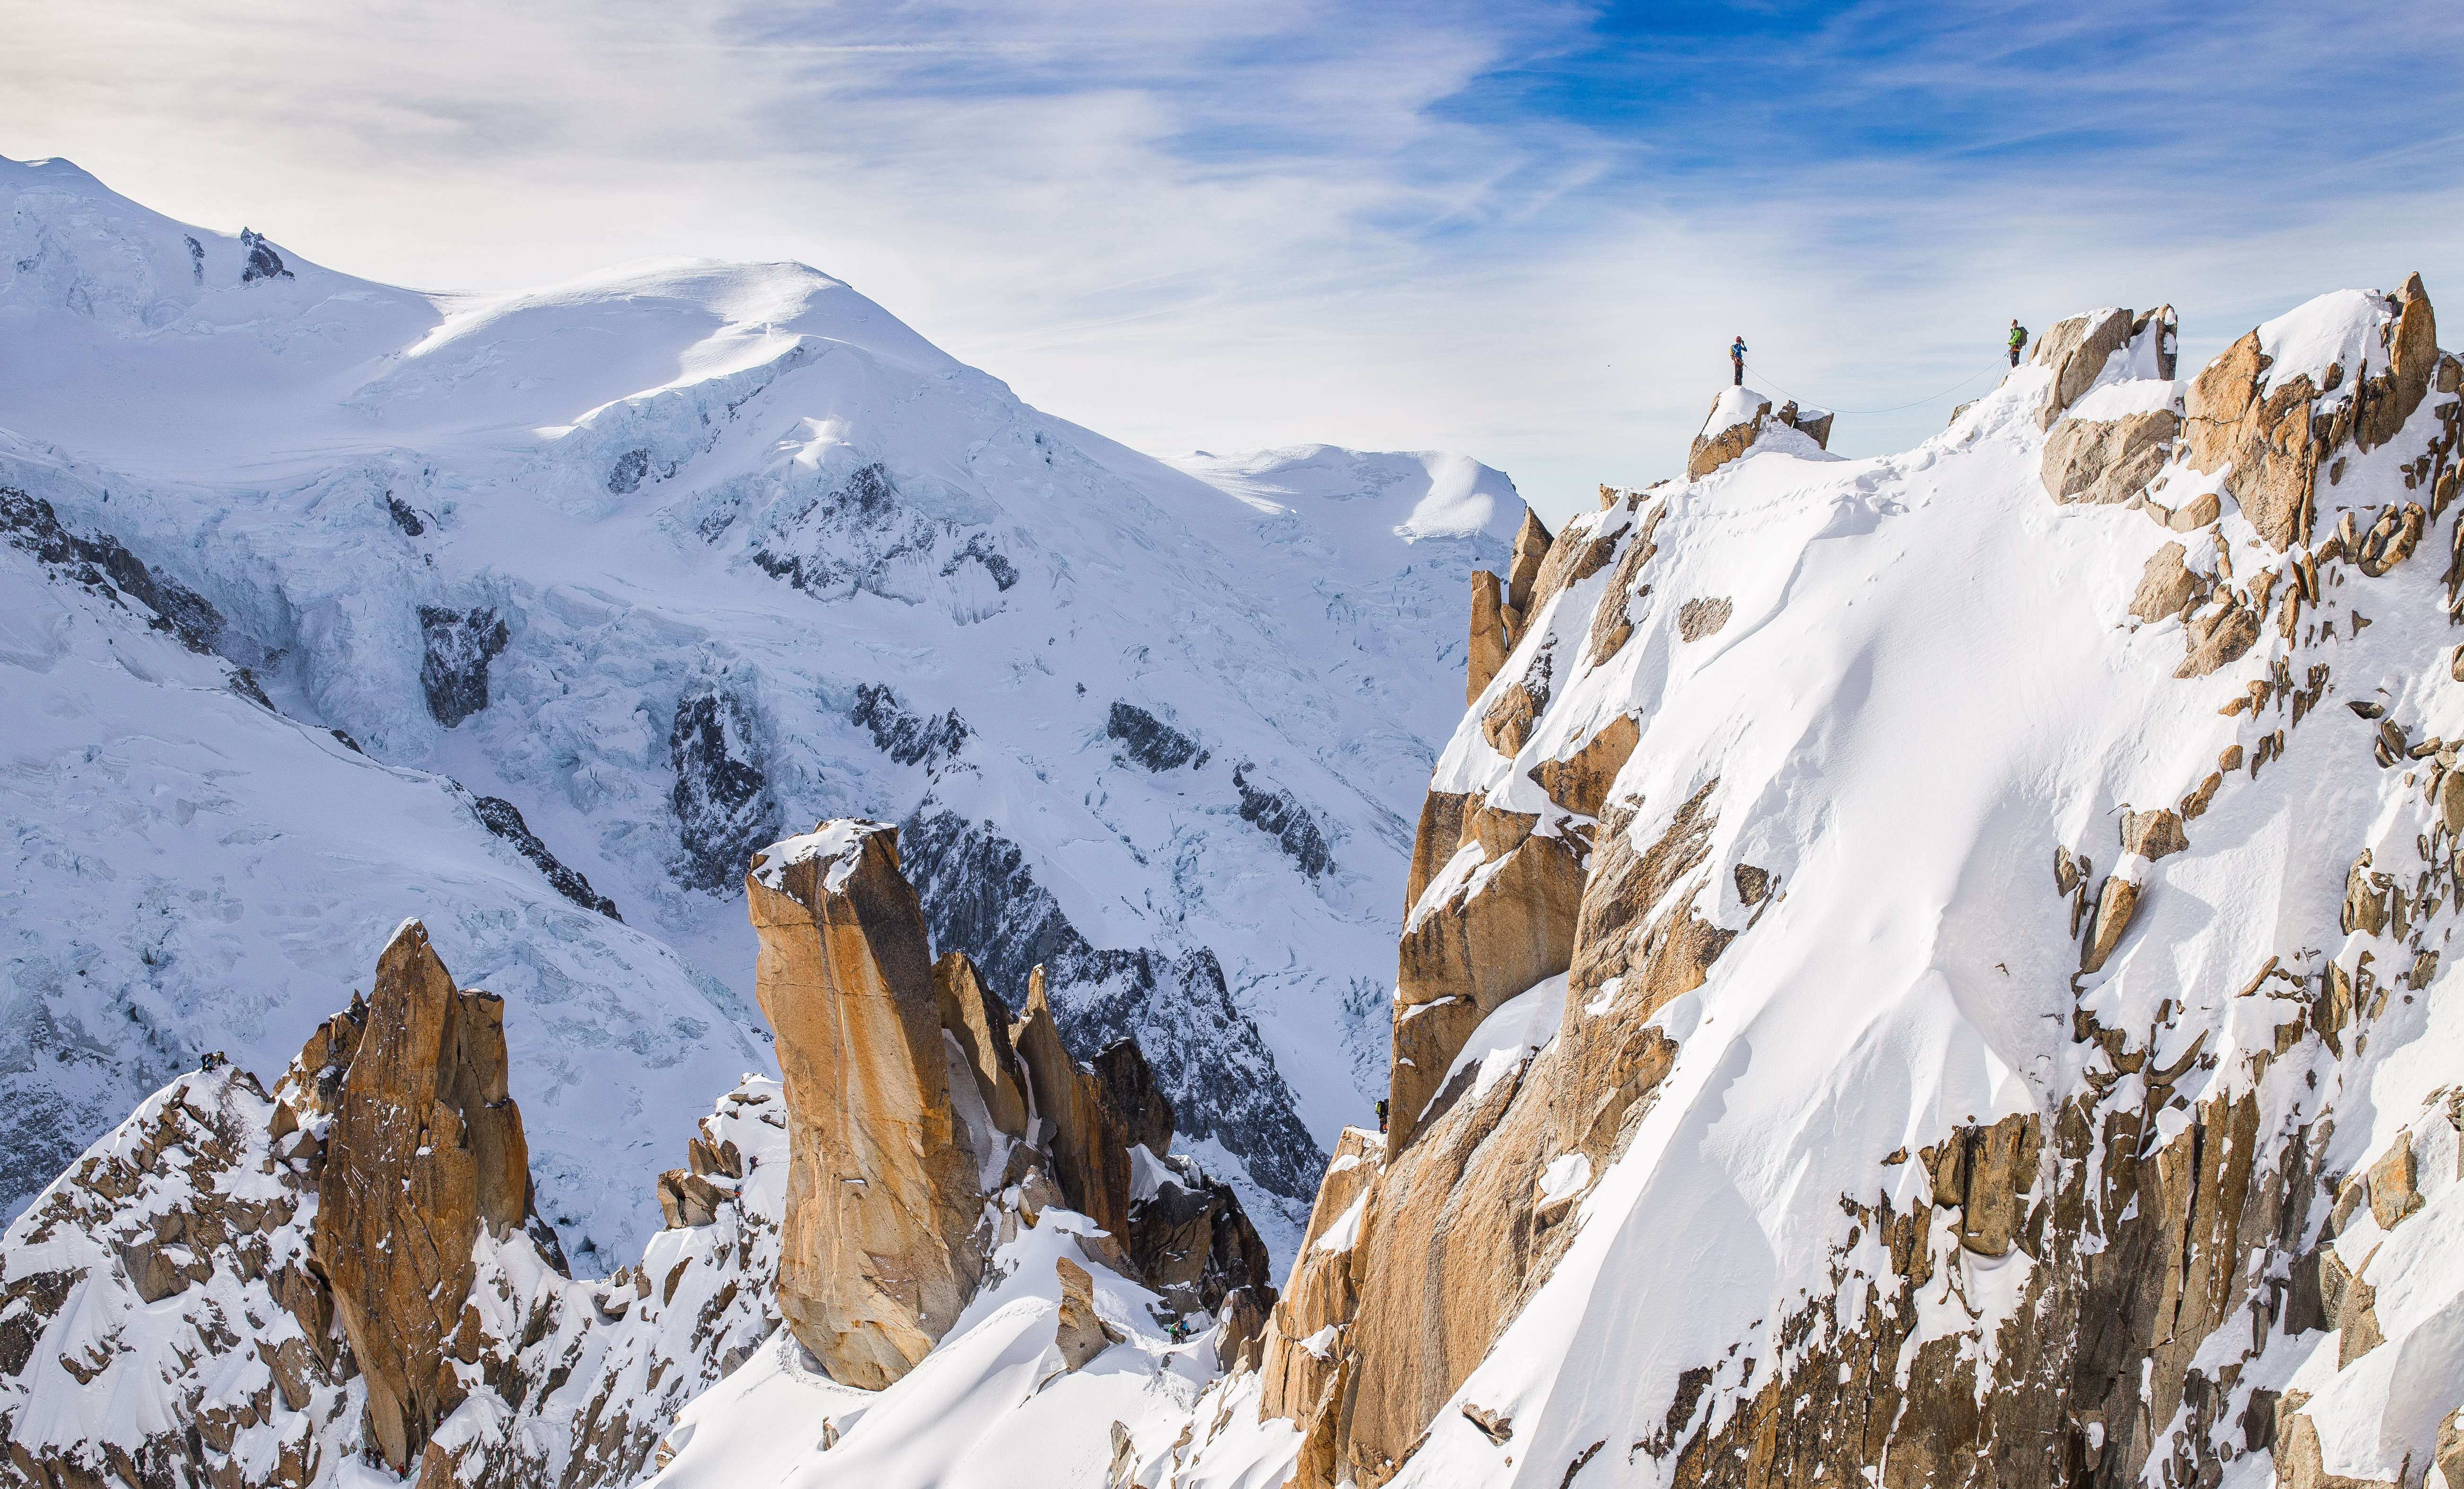 A hiker on a jagged mountain peak covered in snow